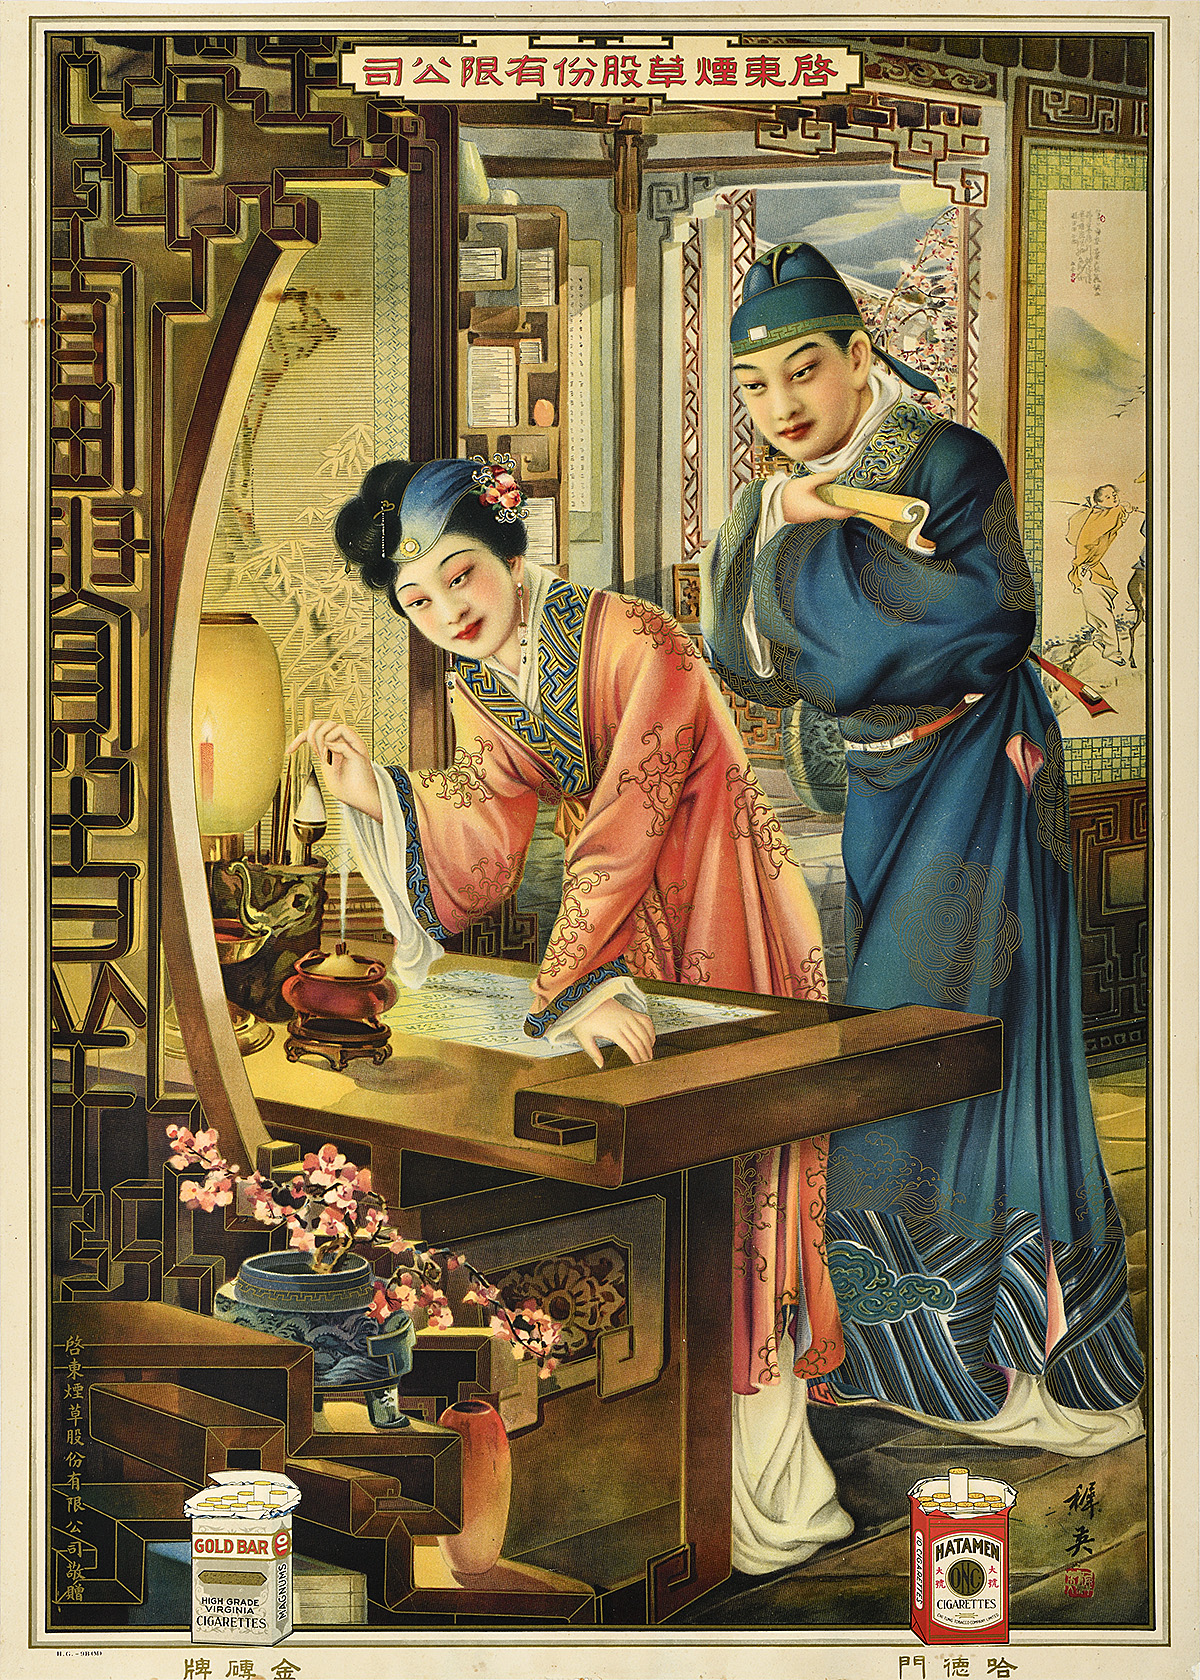 illustrational poster of an Asian man and woman dressed traditionally within a domestic interior